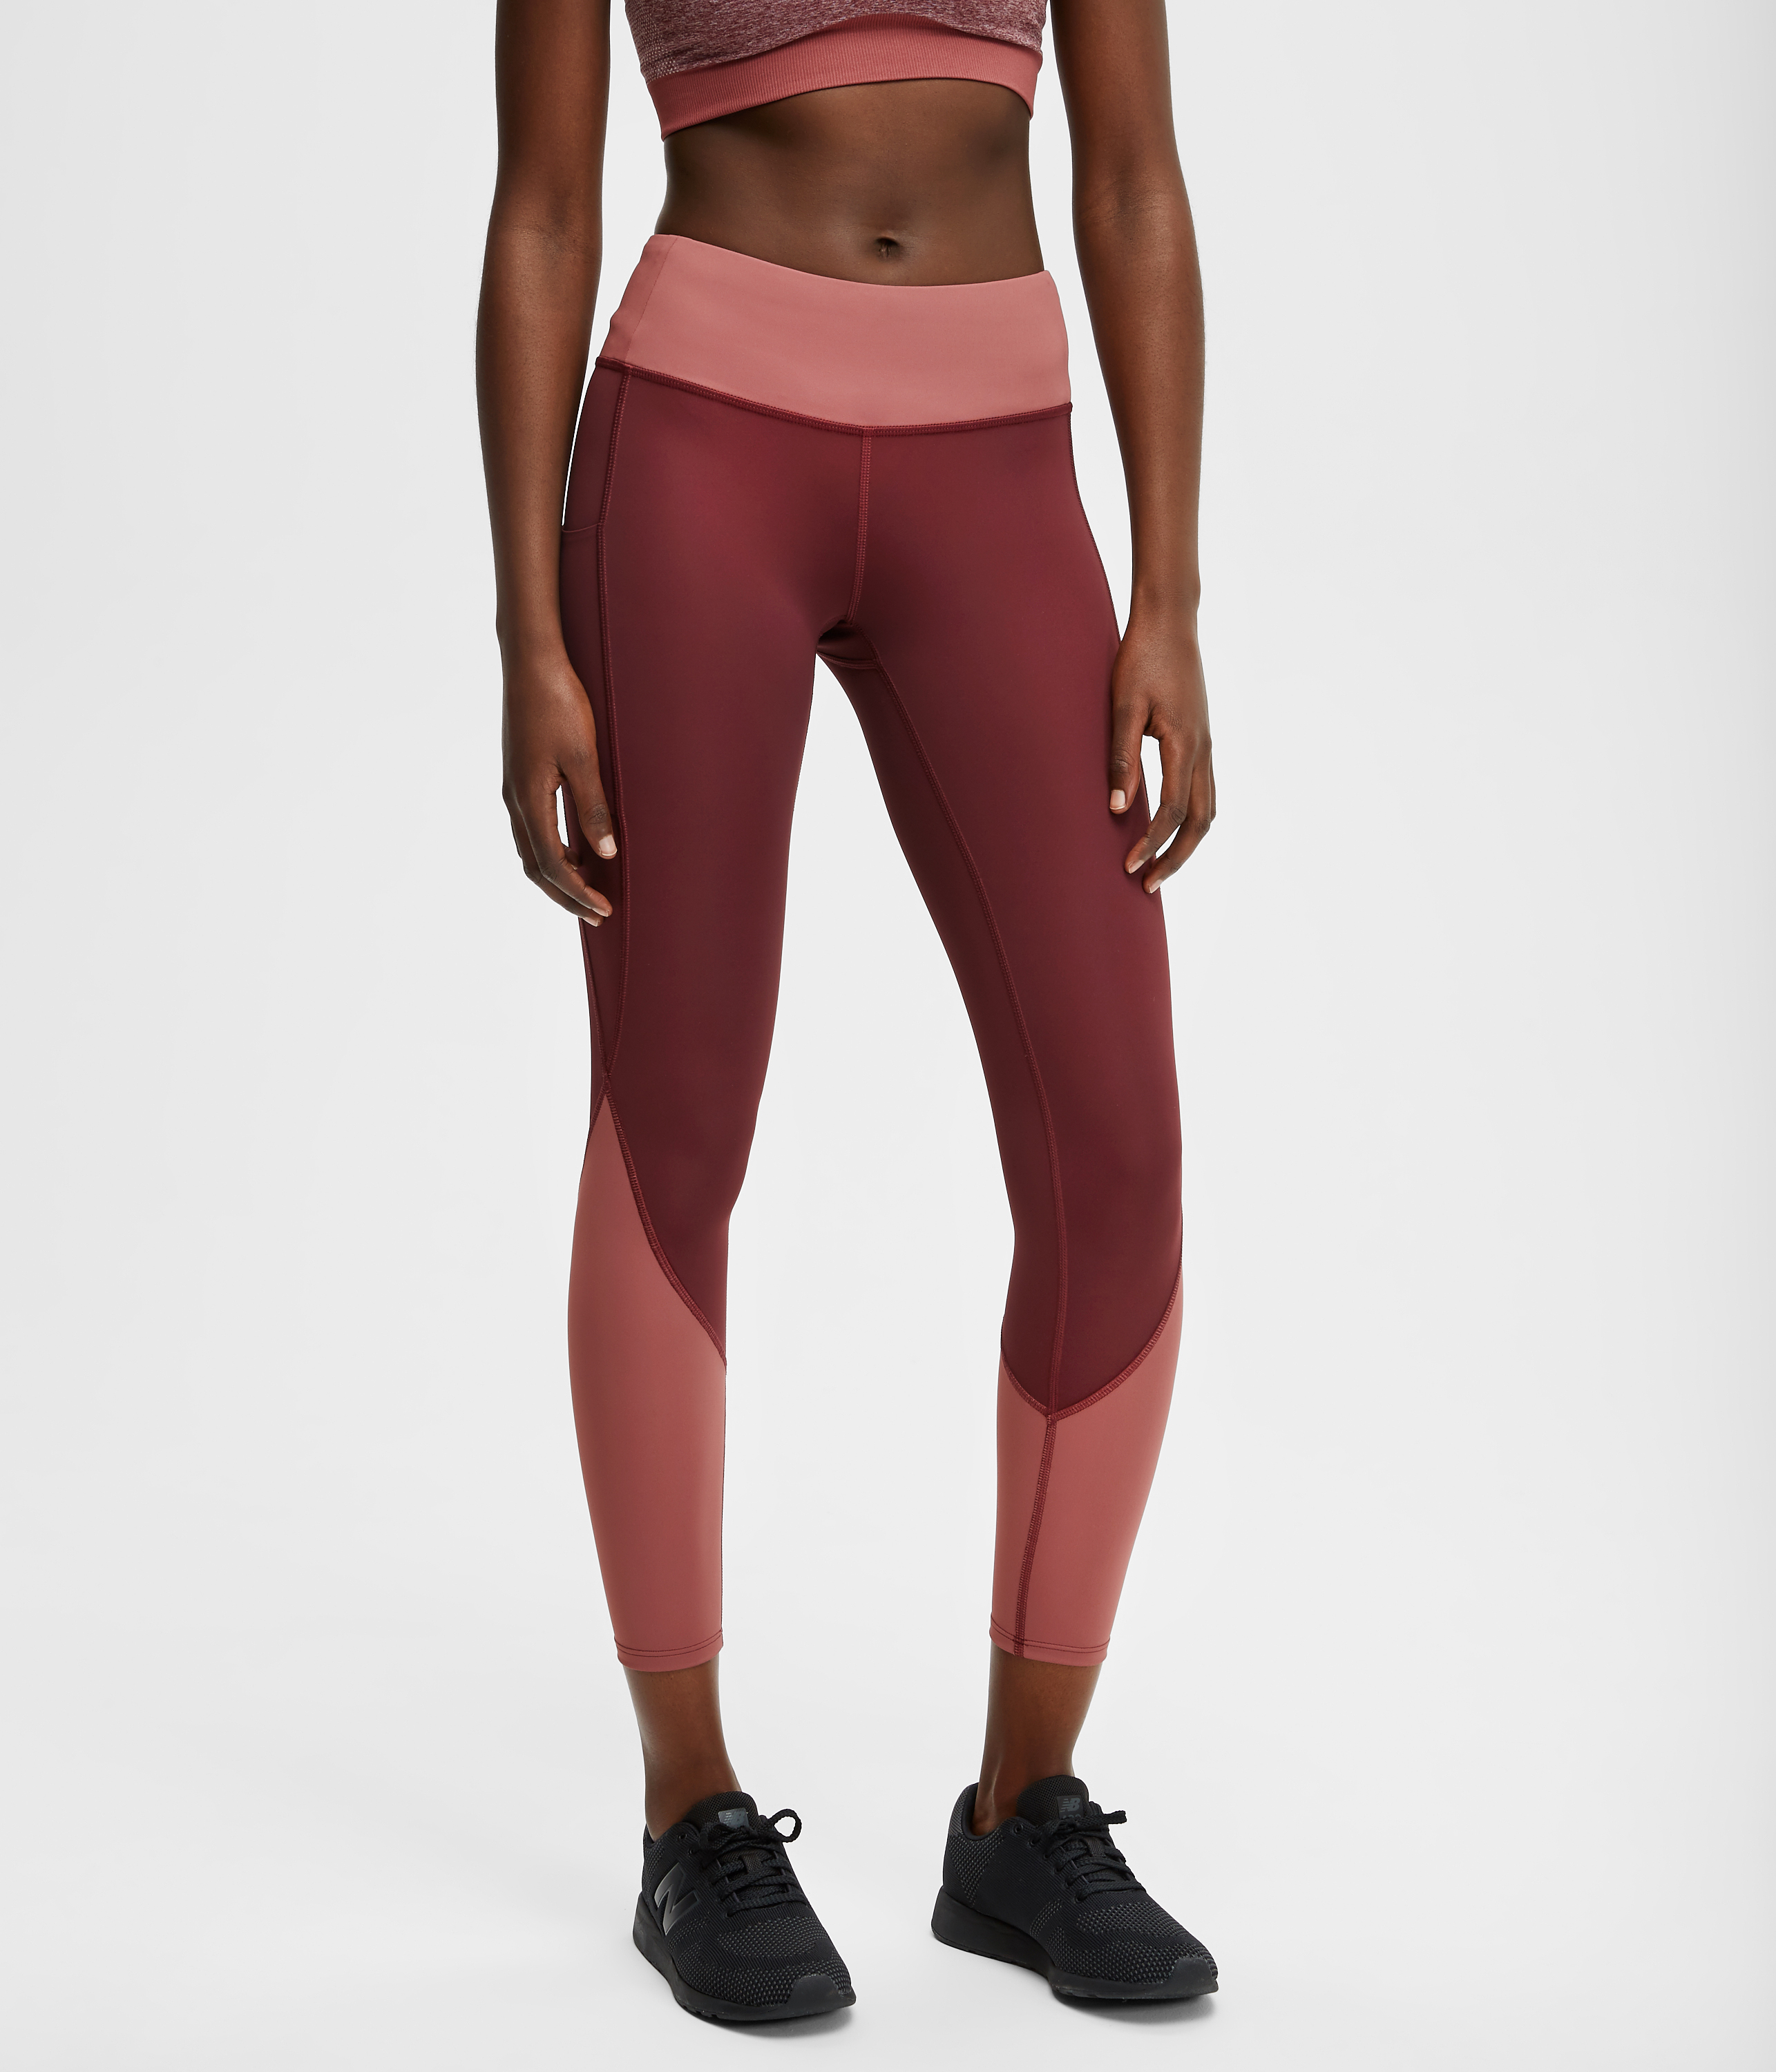 4a422ad8d Leggings and tights